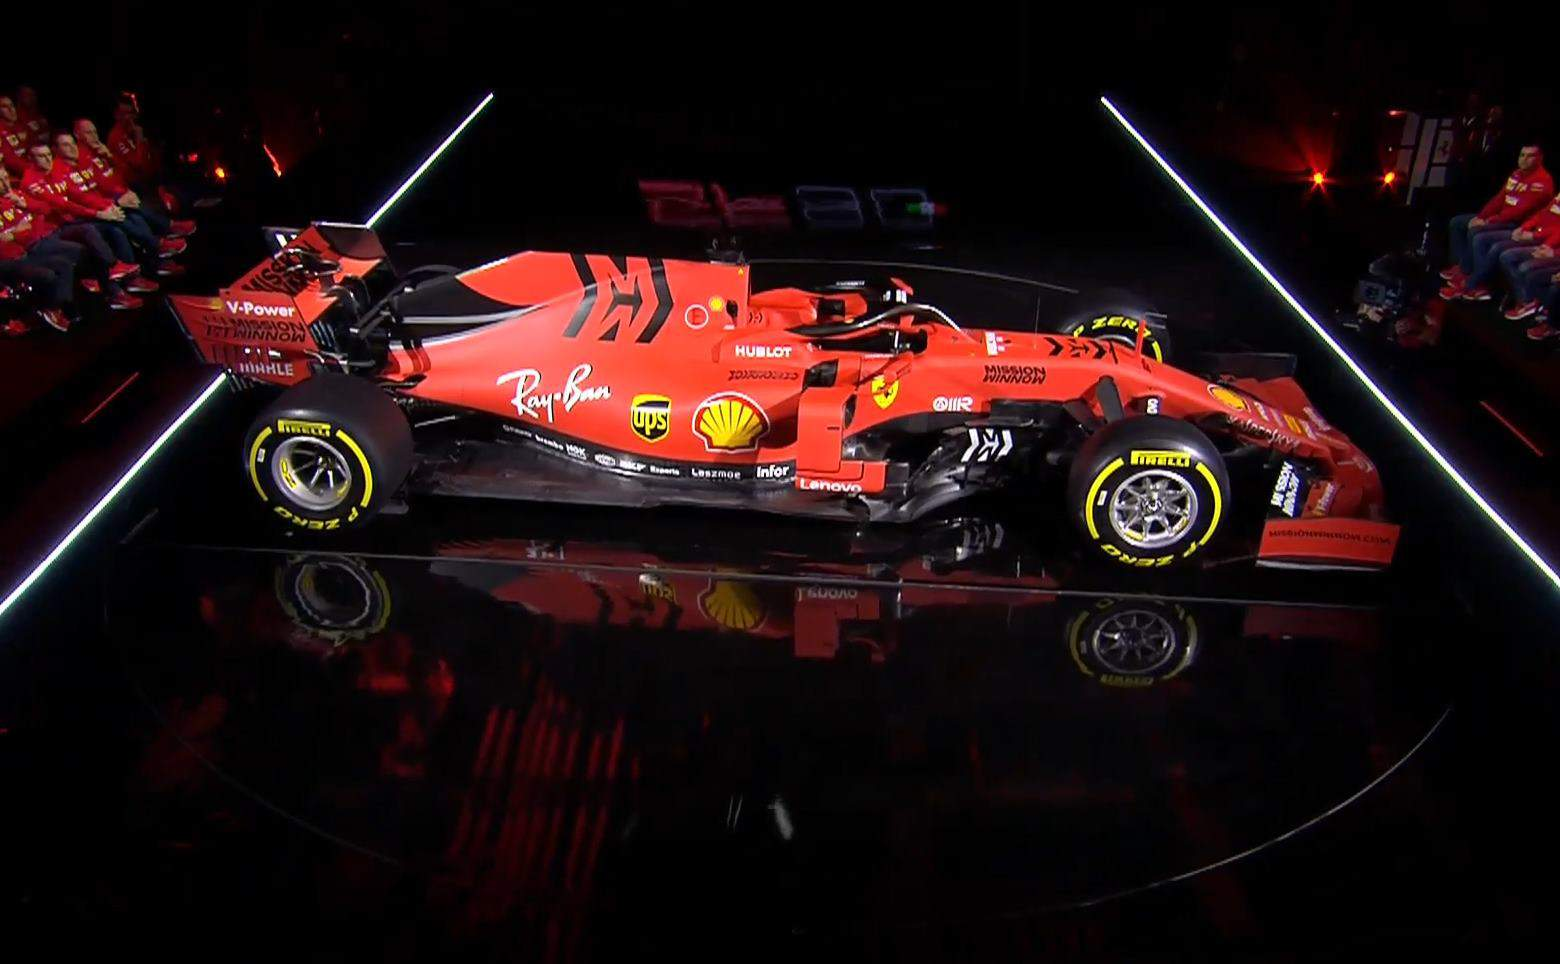 2019 Ferrari SF90H Photo Ferrari side angle live presentation